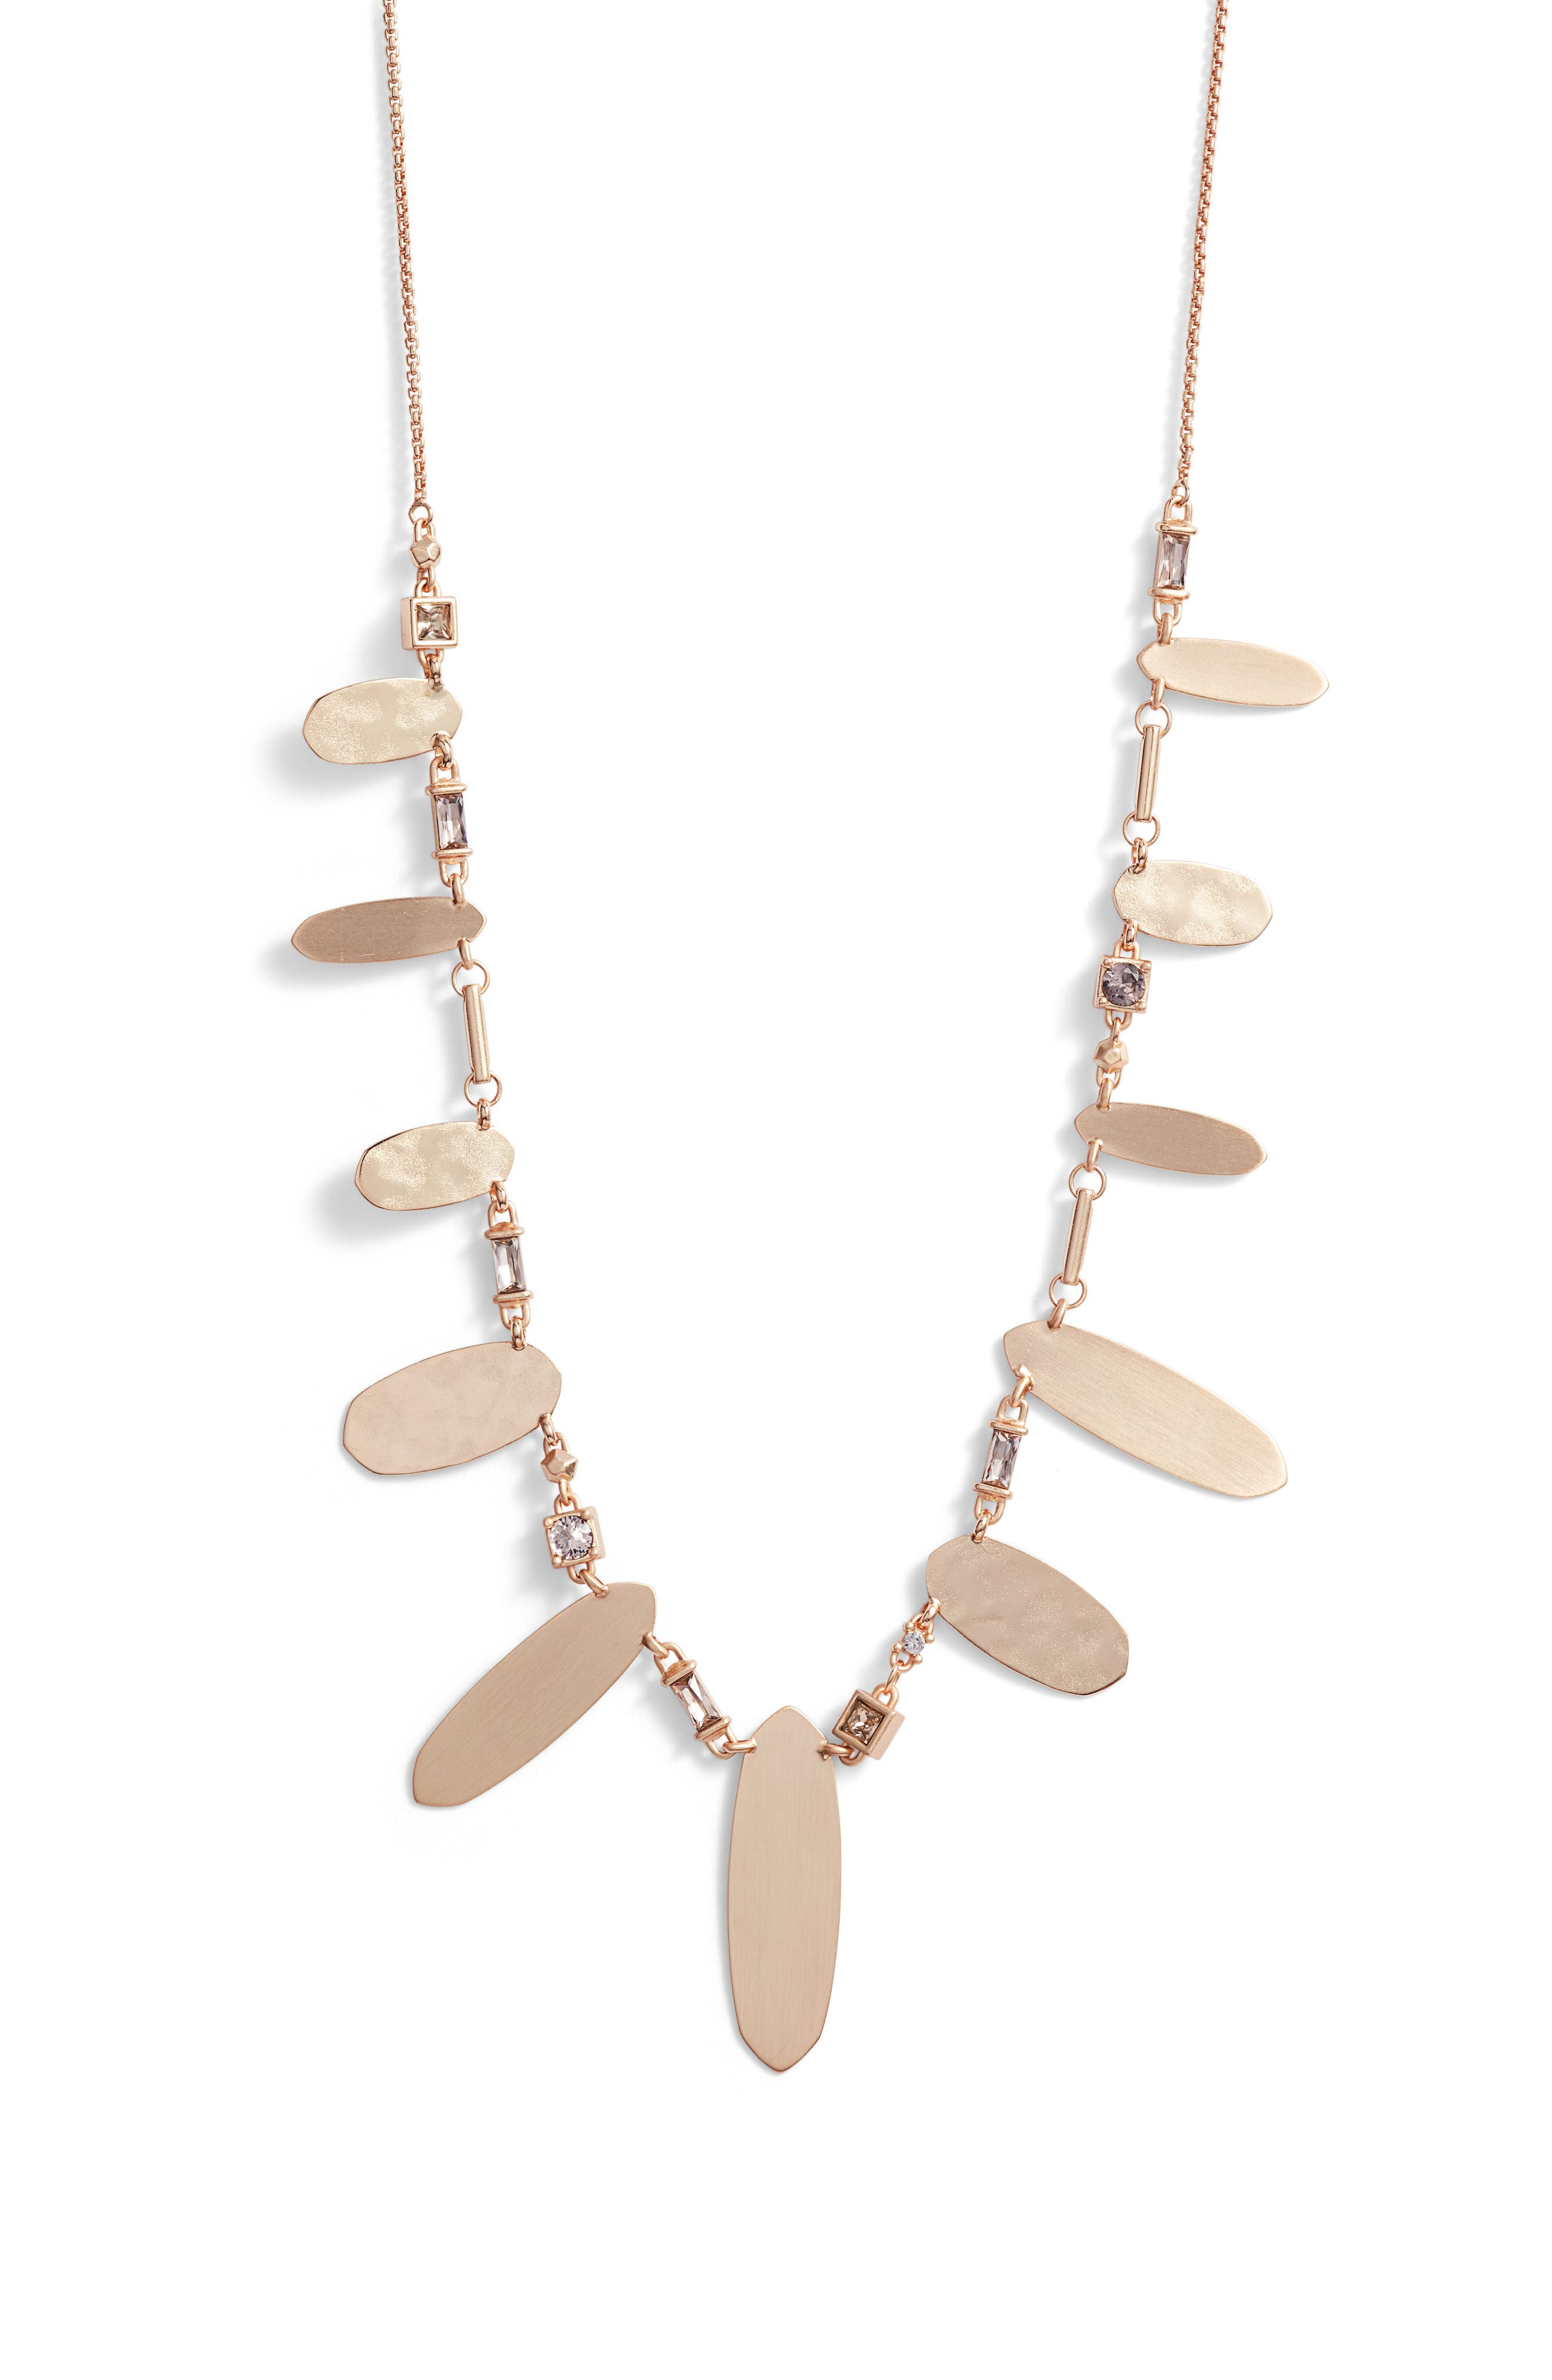 Image of Kendra Scott Airella Necklace